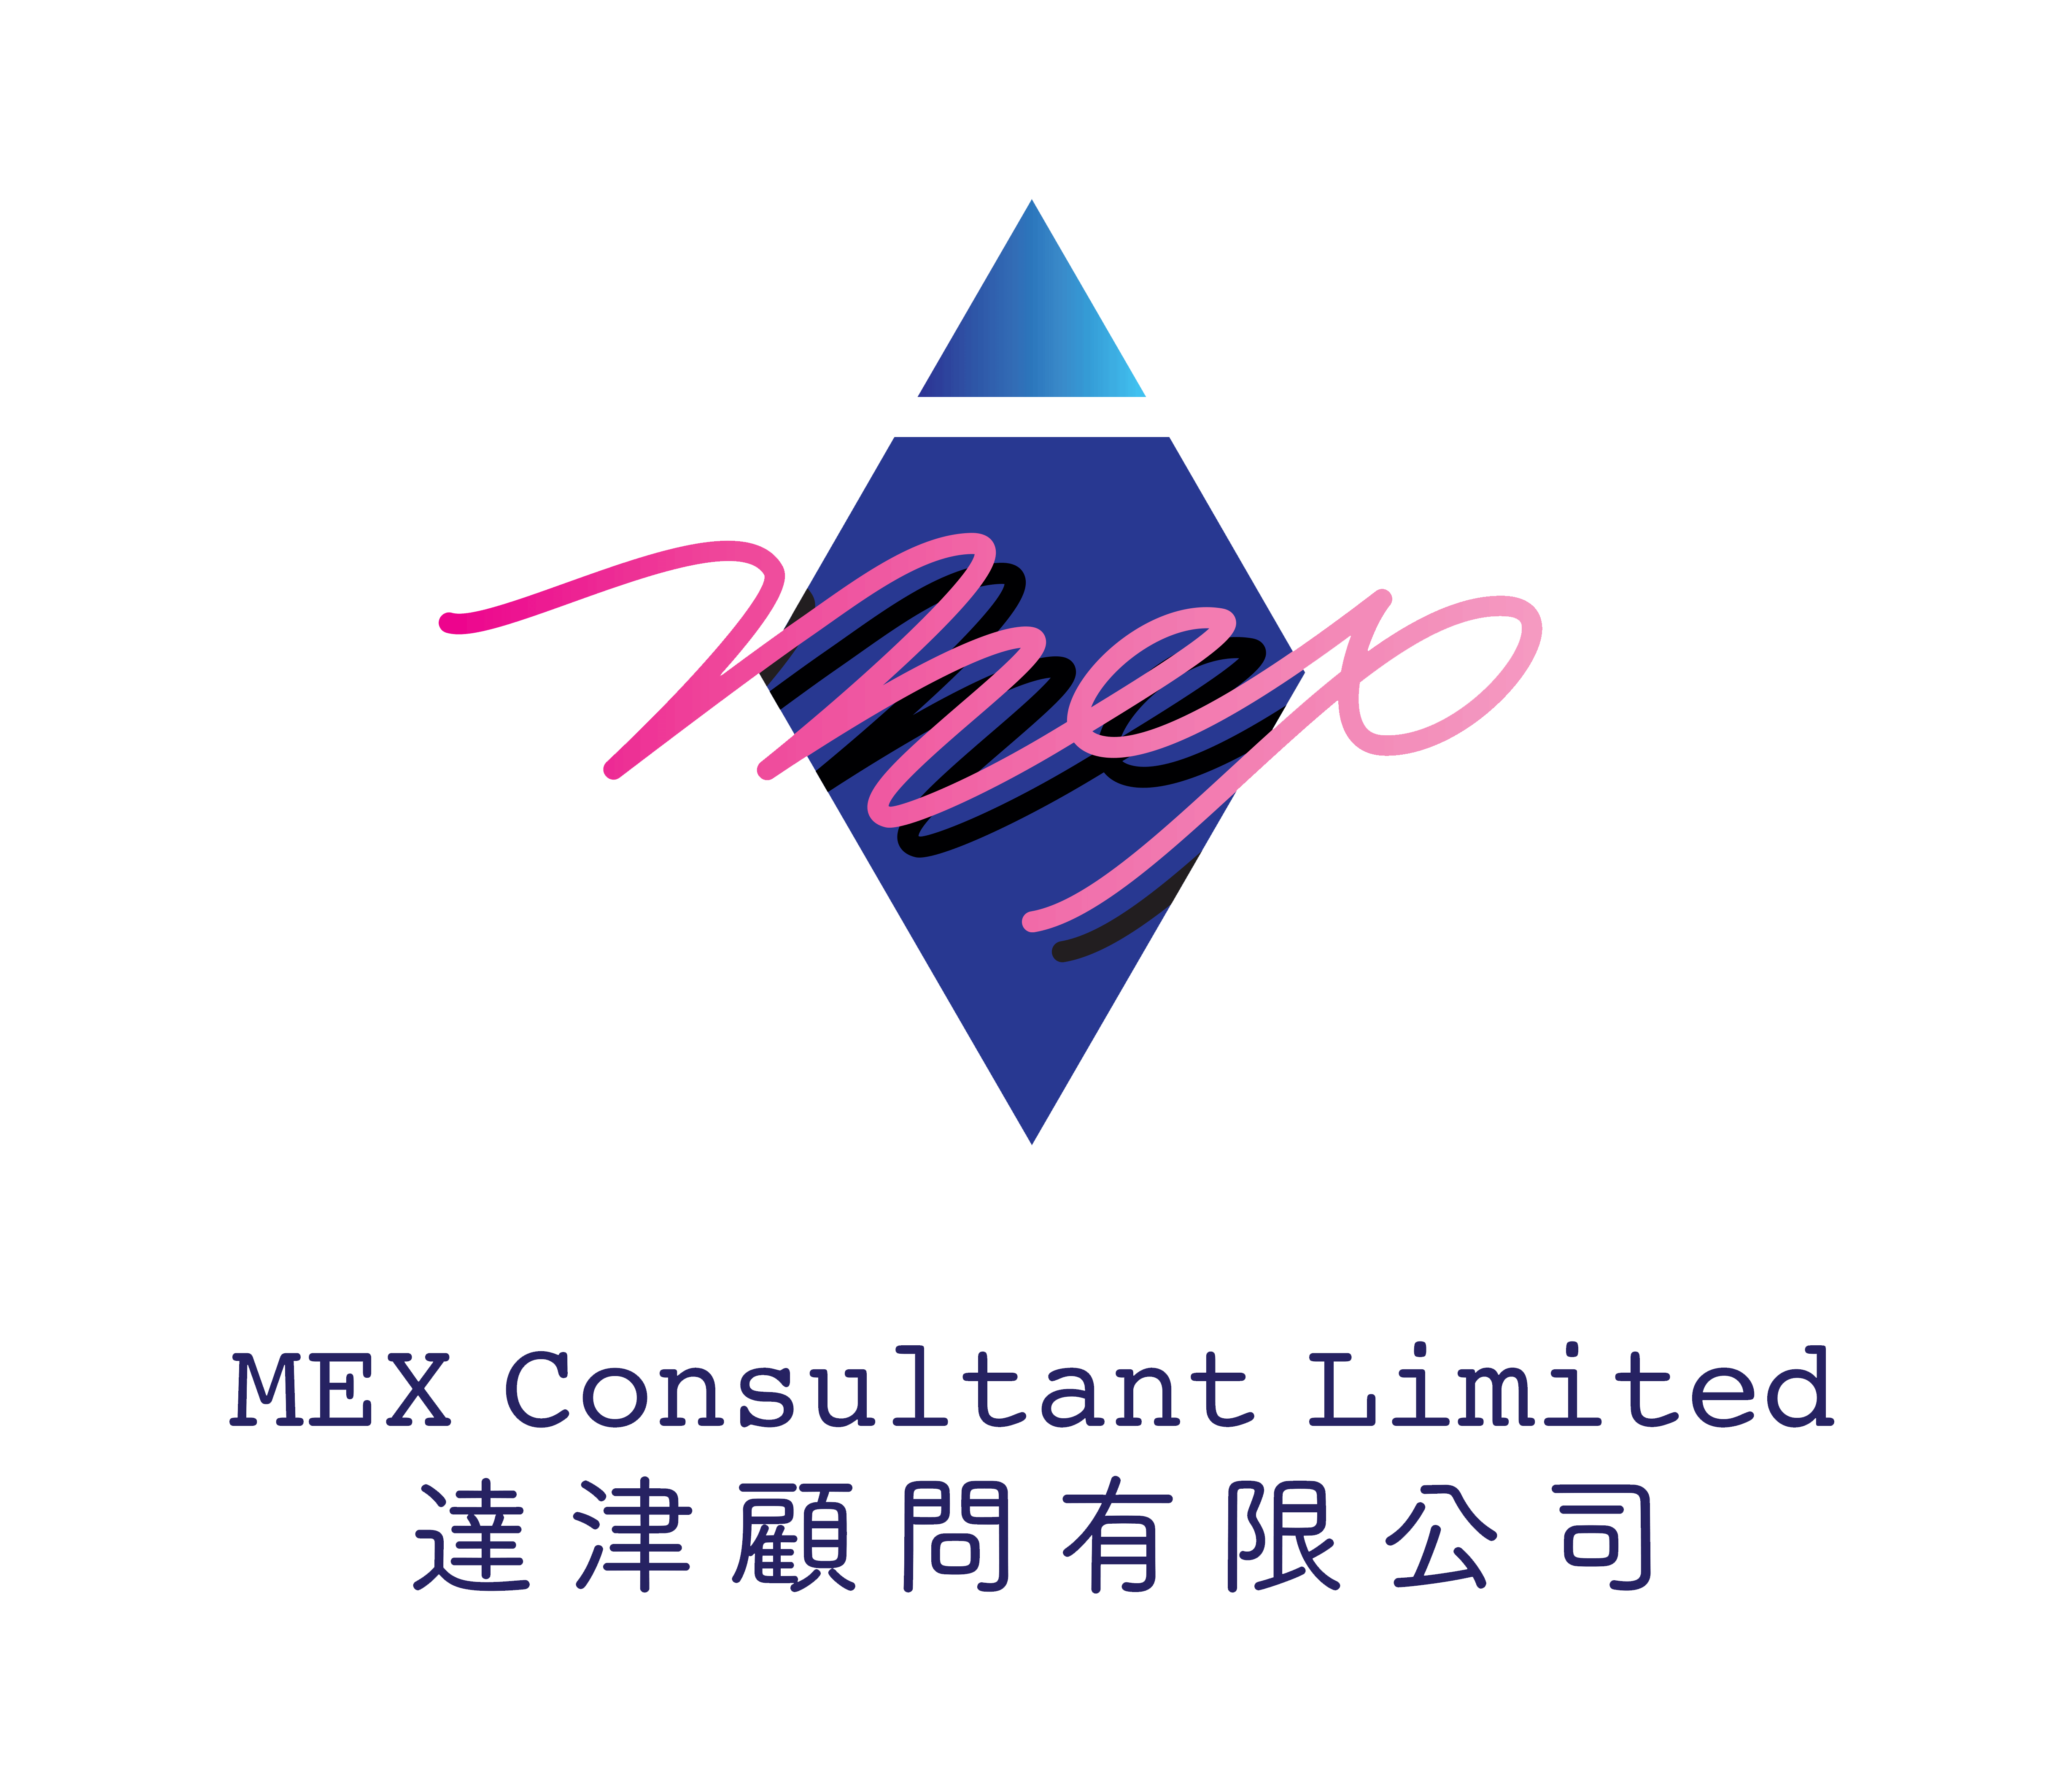 MEX Consultant Limited